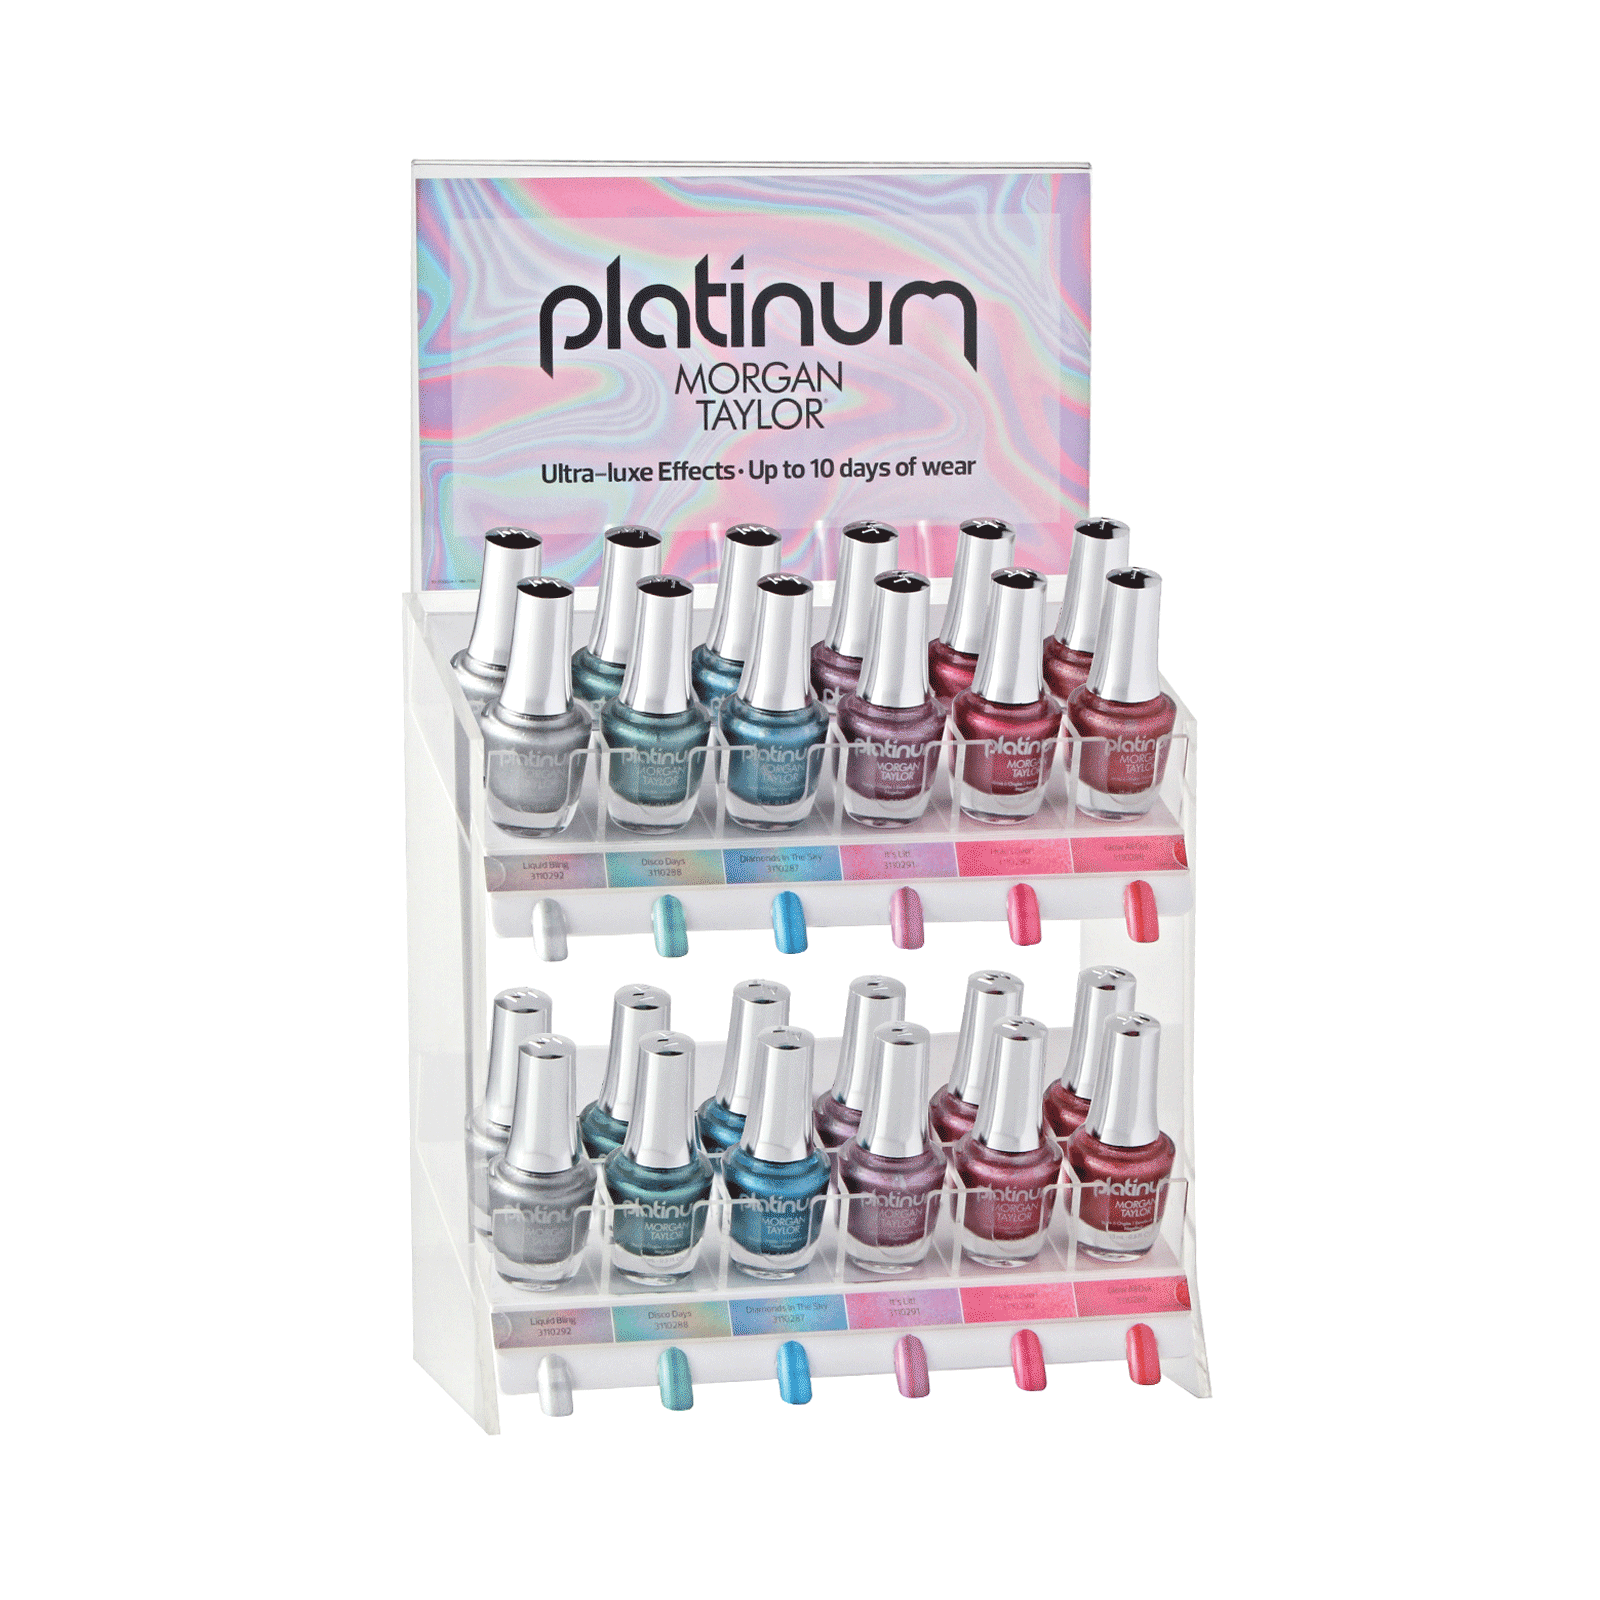 Platinum - 24 Count Display